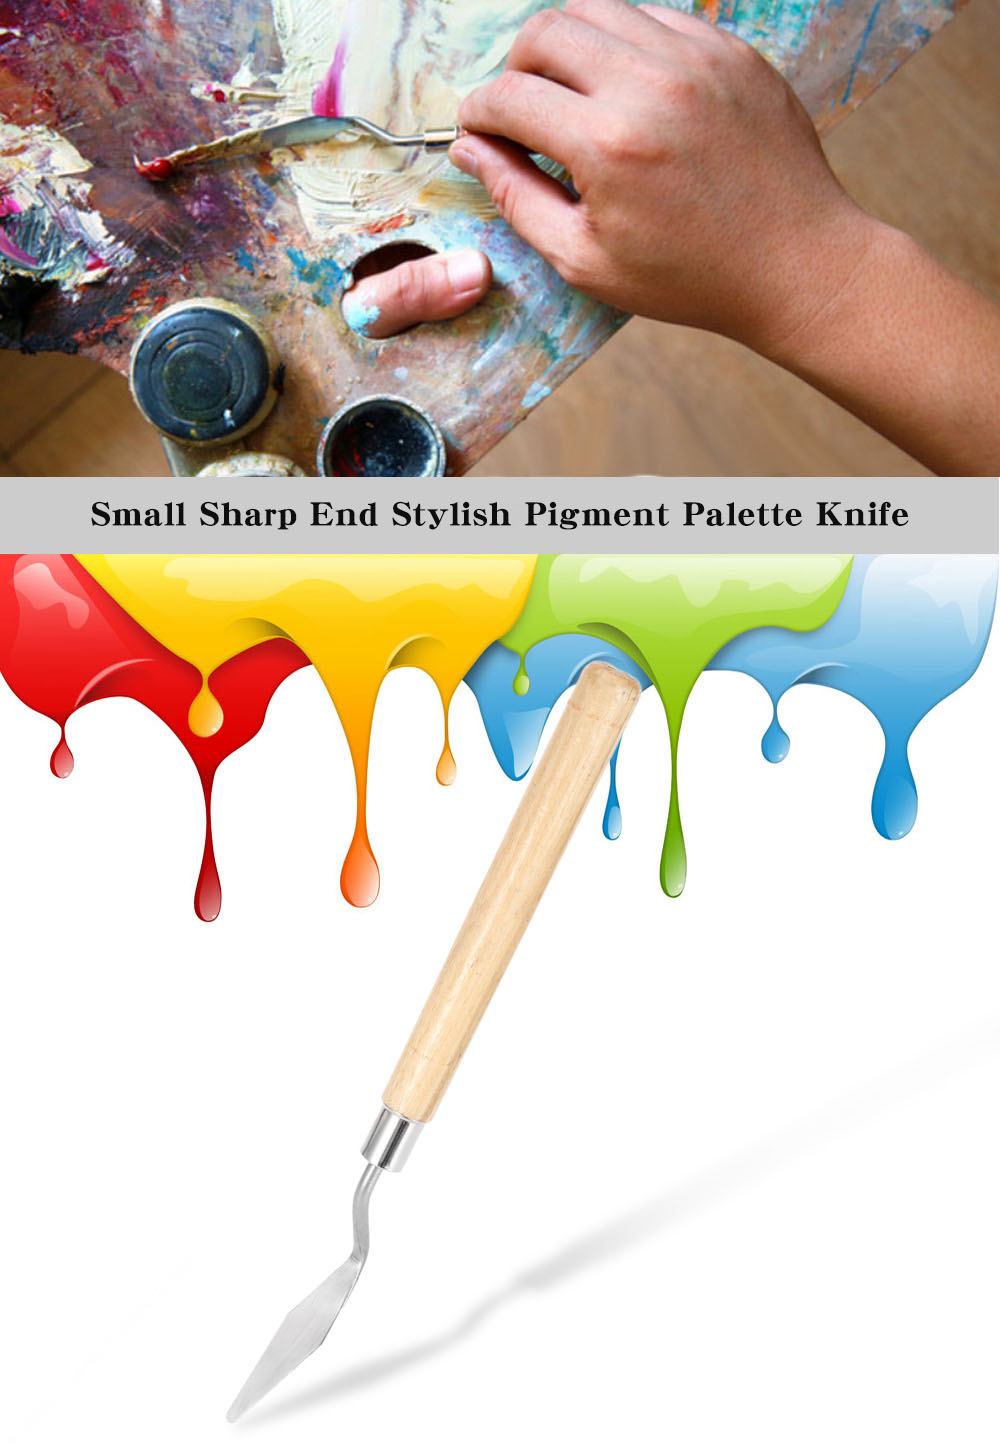 Small Sharp End Hot Sale Pigment Palette Knife